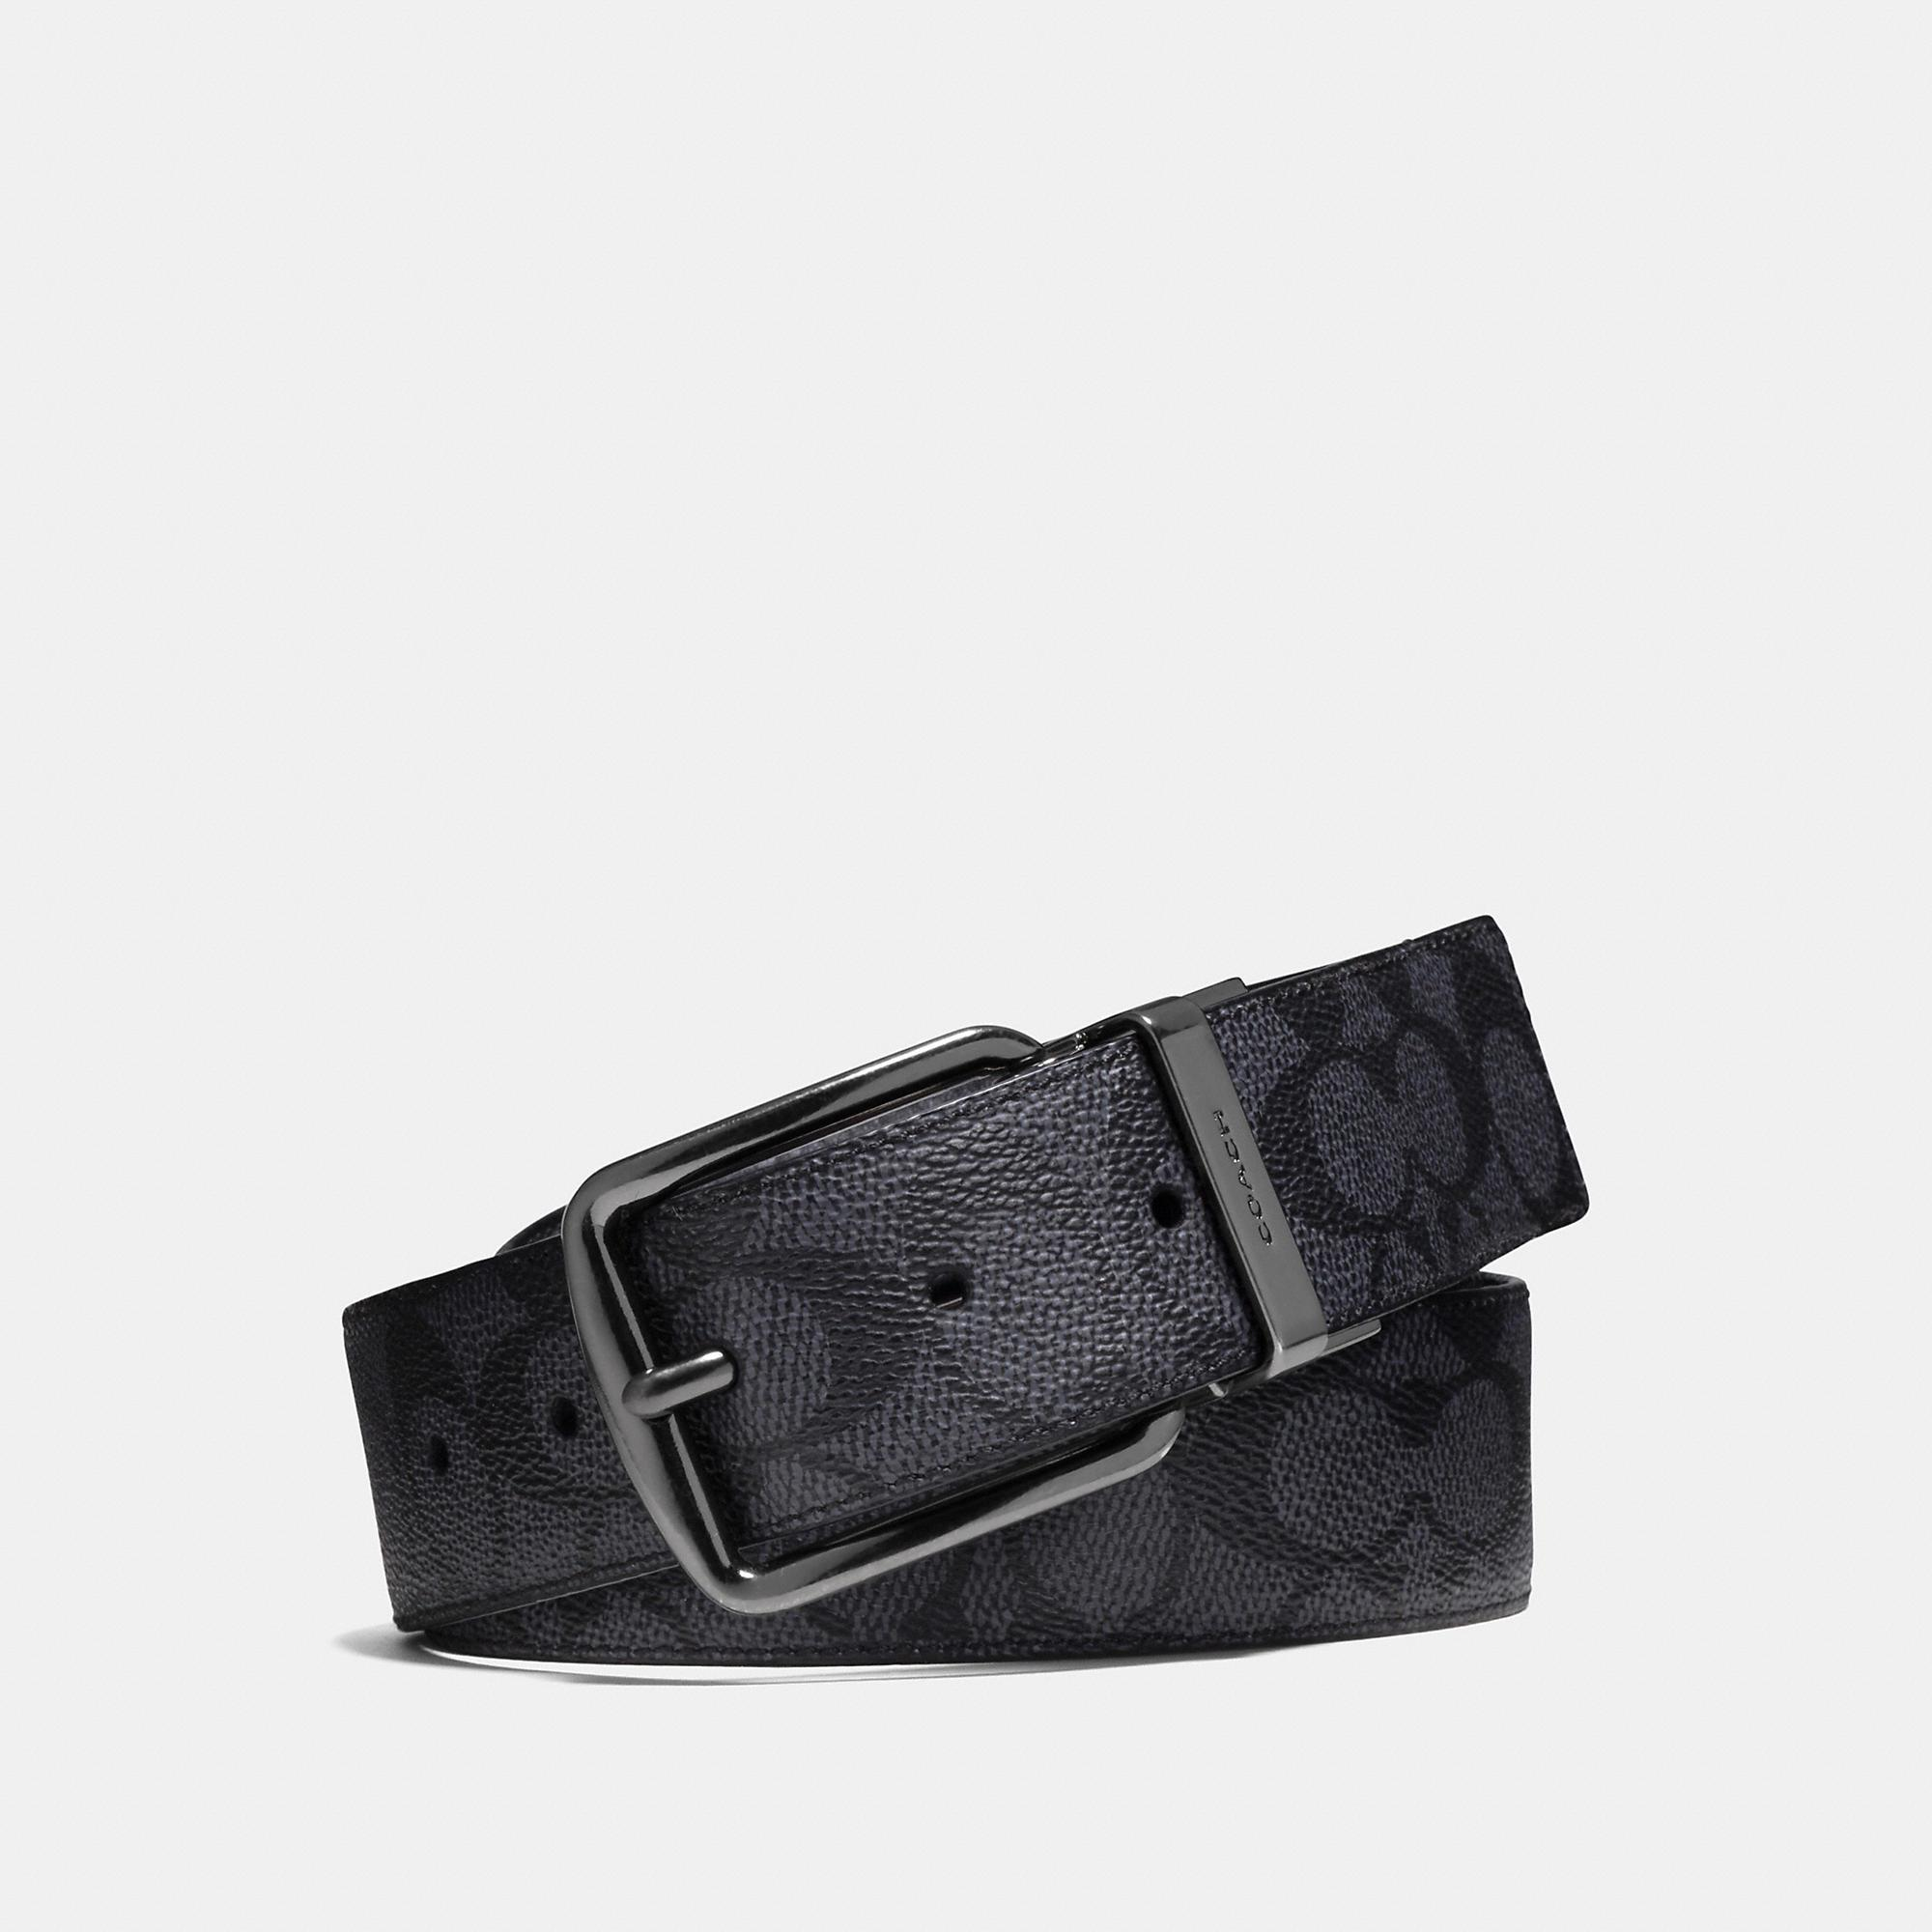 8ccdee975b119 Coach Signature Logo Leather Belt In Charcoal Black